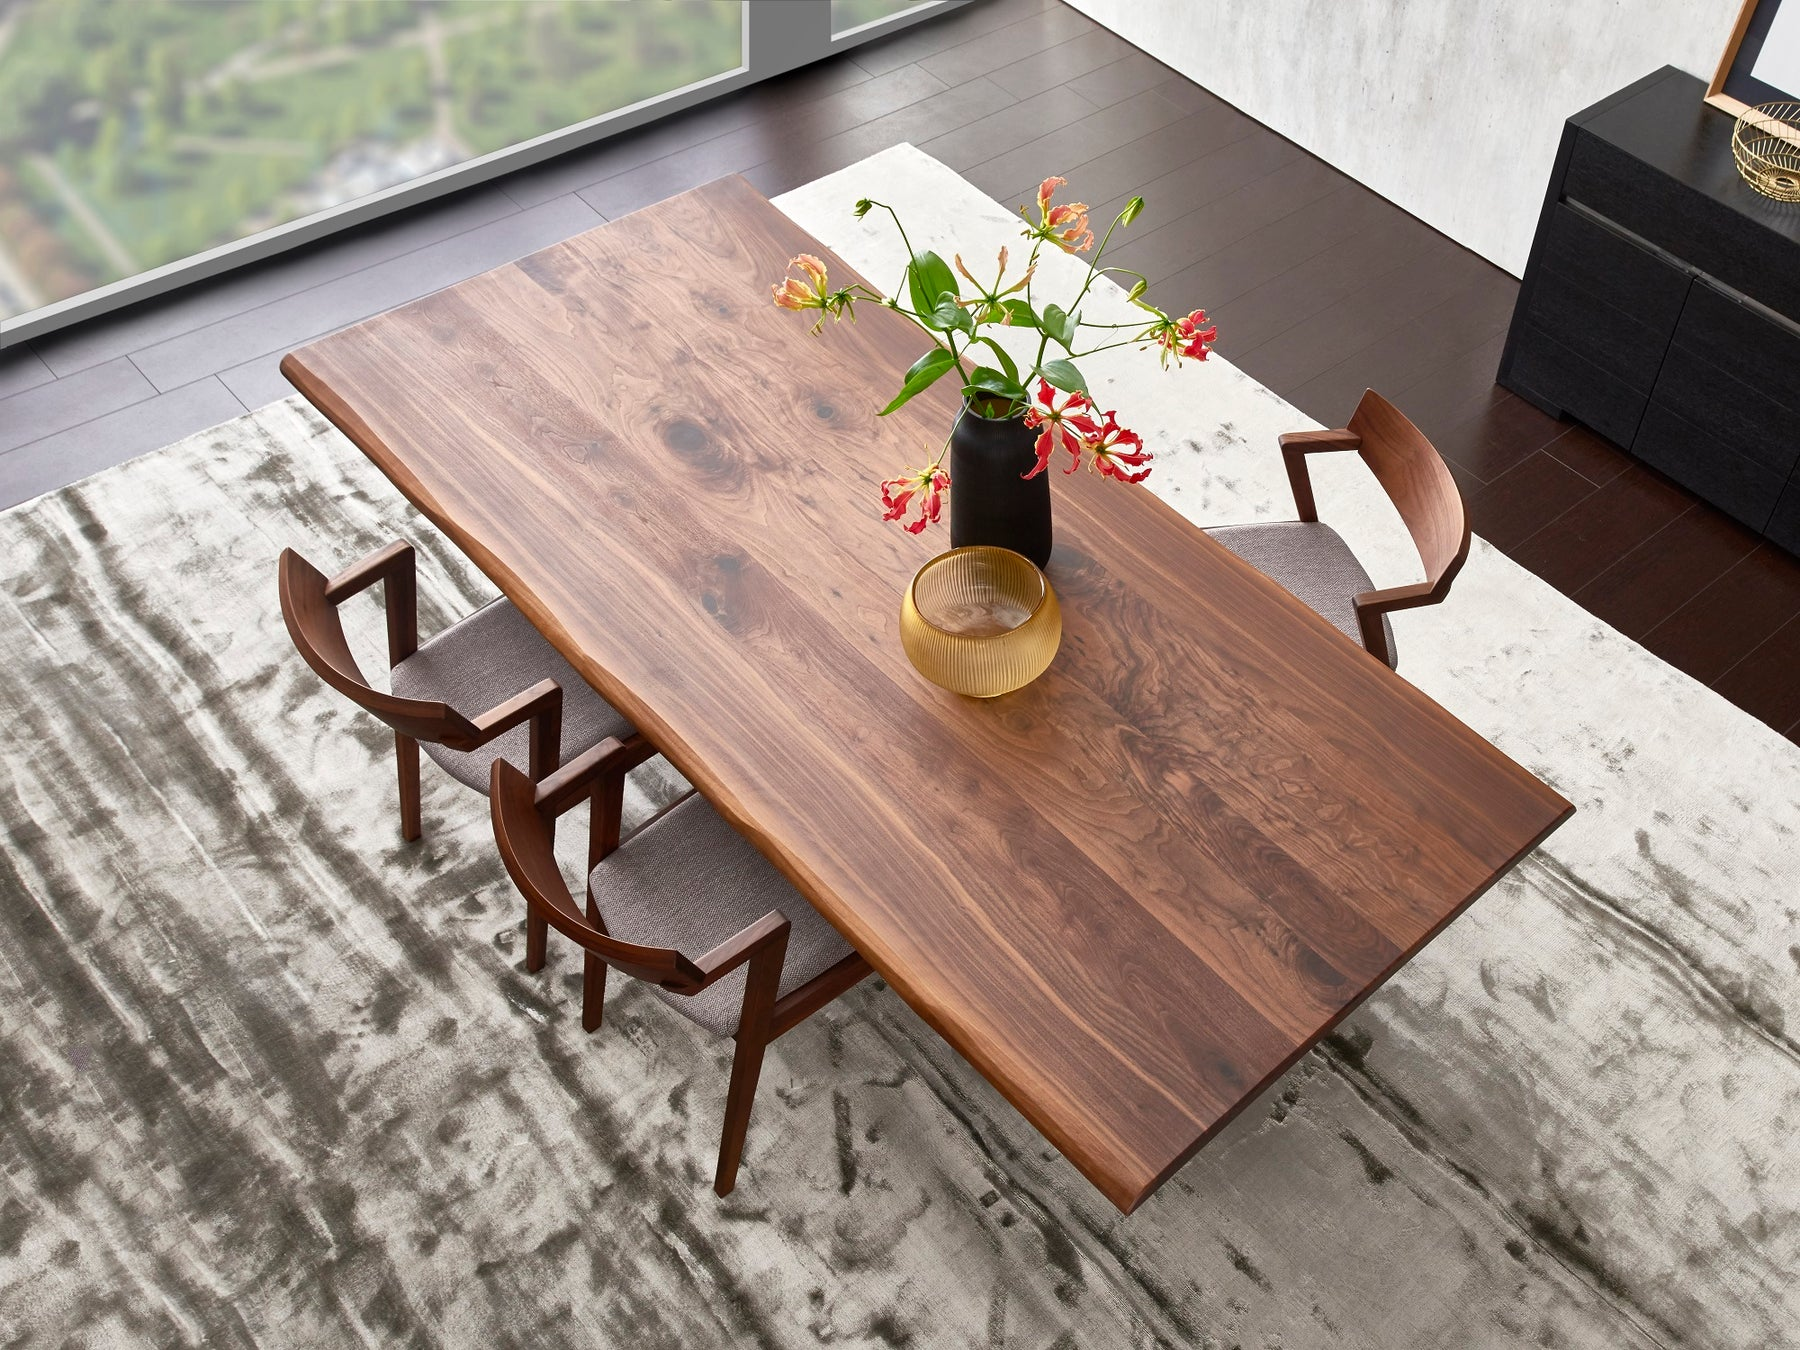 Choosing The Right Dining Table For Your Home